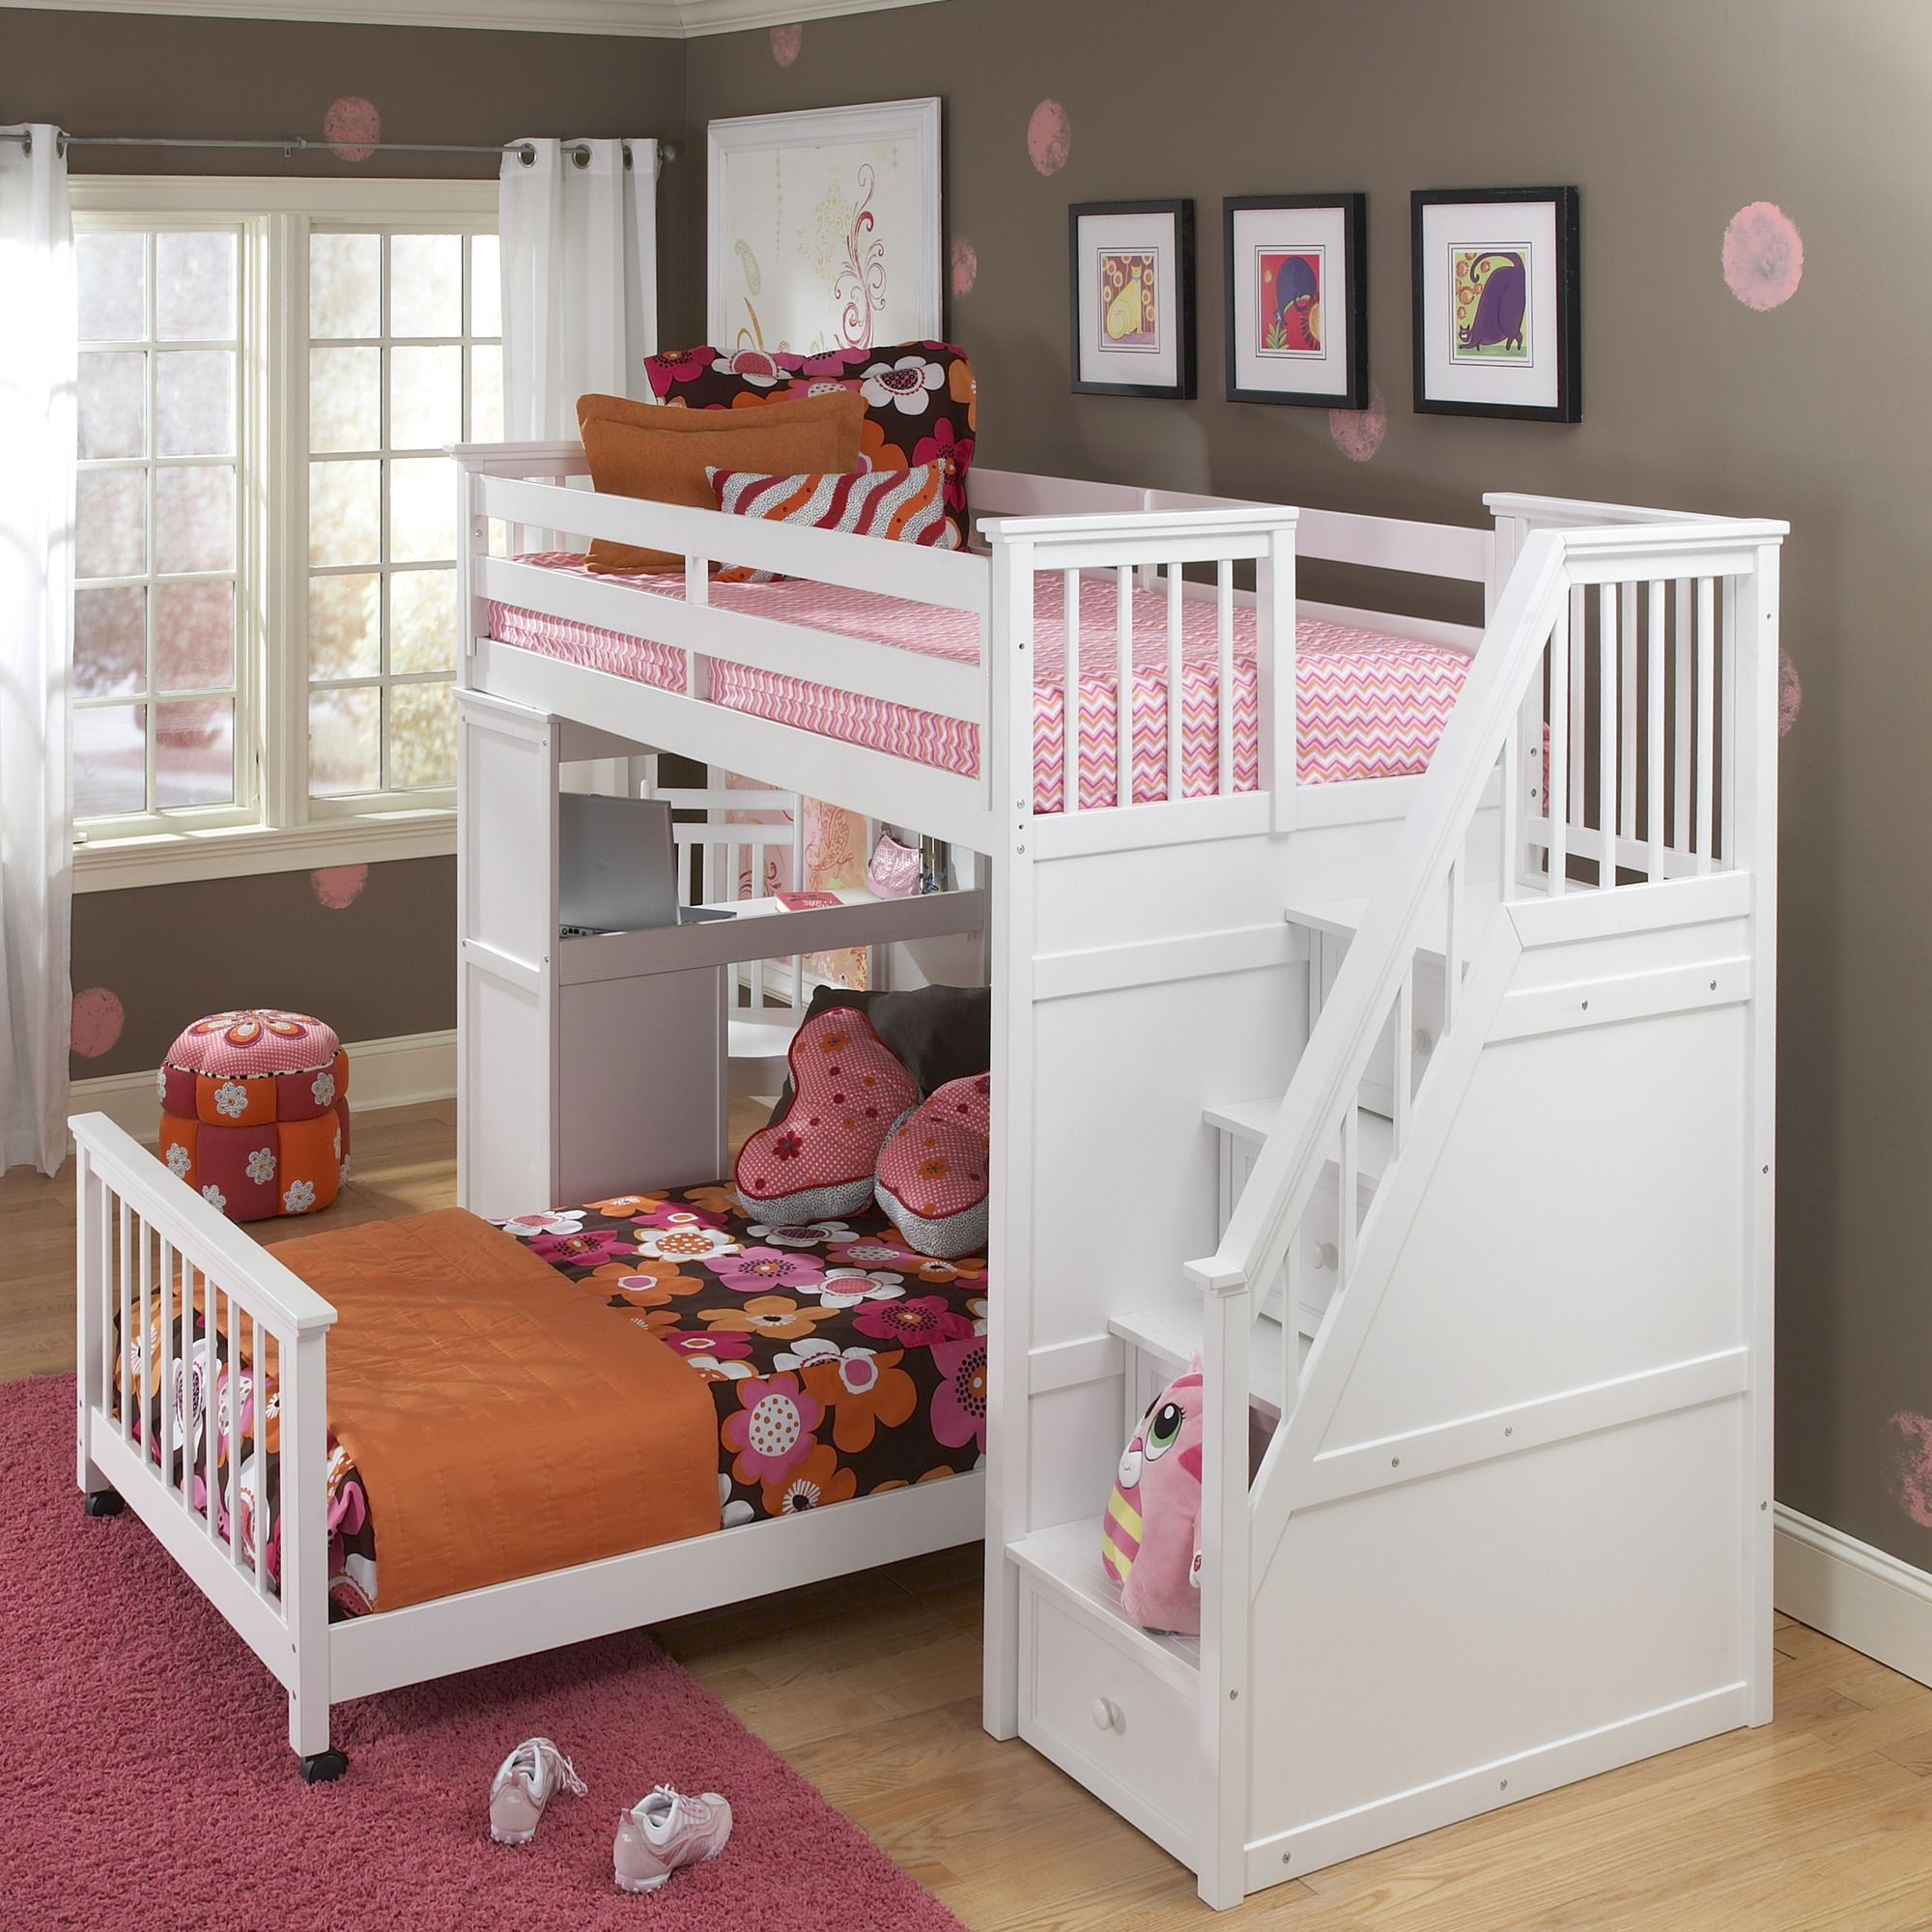 Im not much into the modular bunk bed but like the compact stair